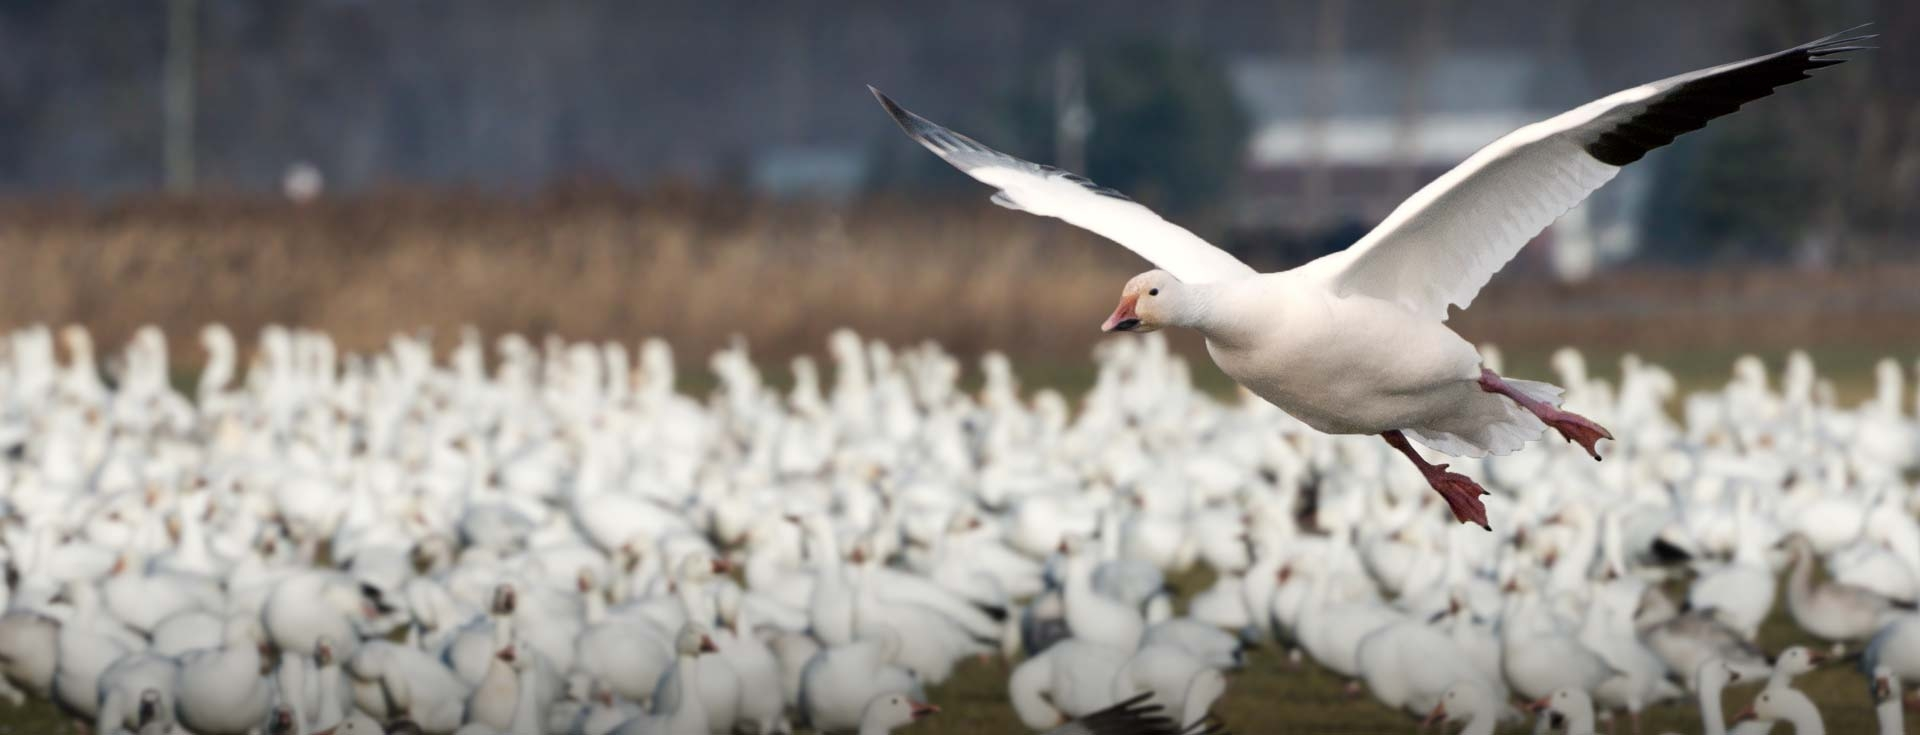 Snow Goose Hunting Field Tips & Hunting Tactics